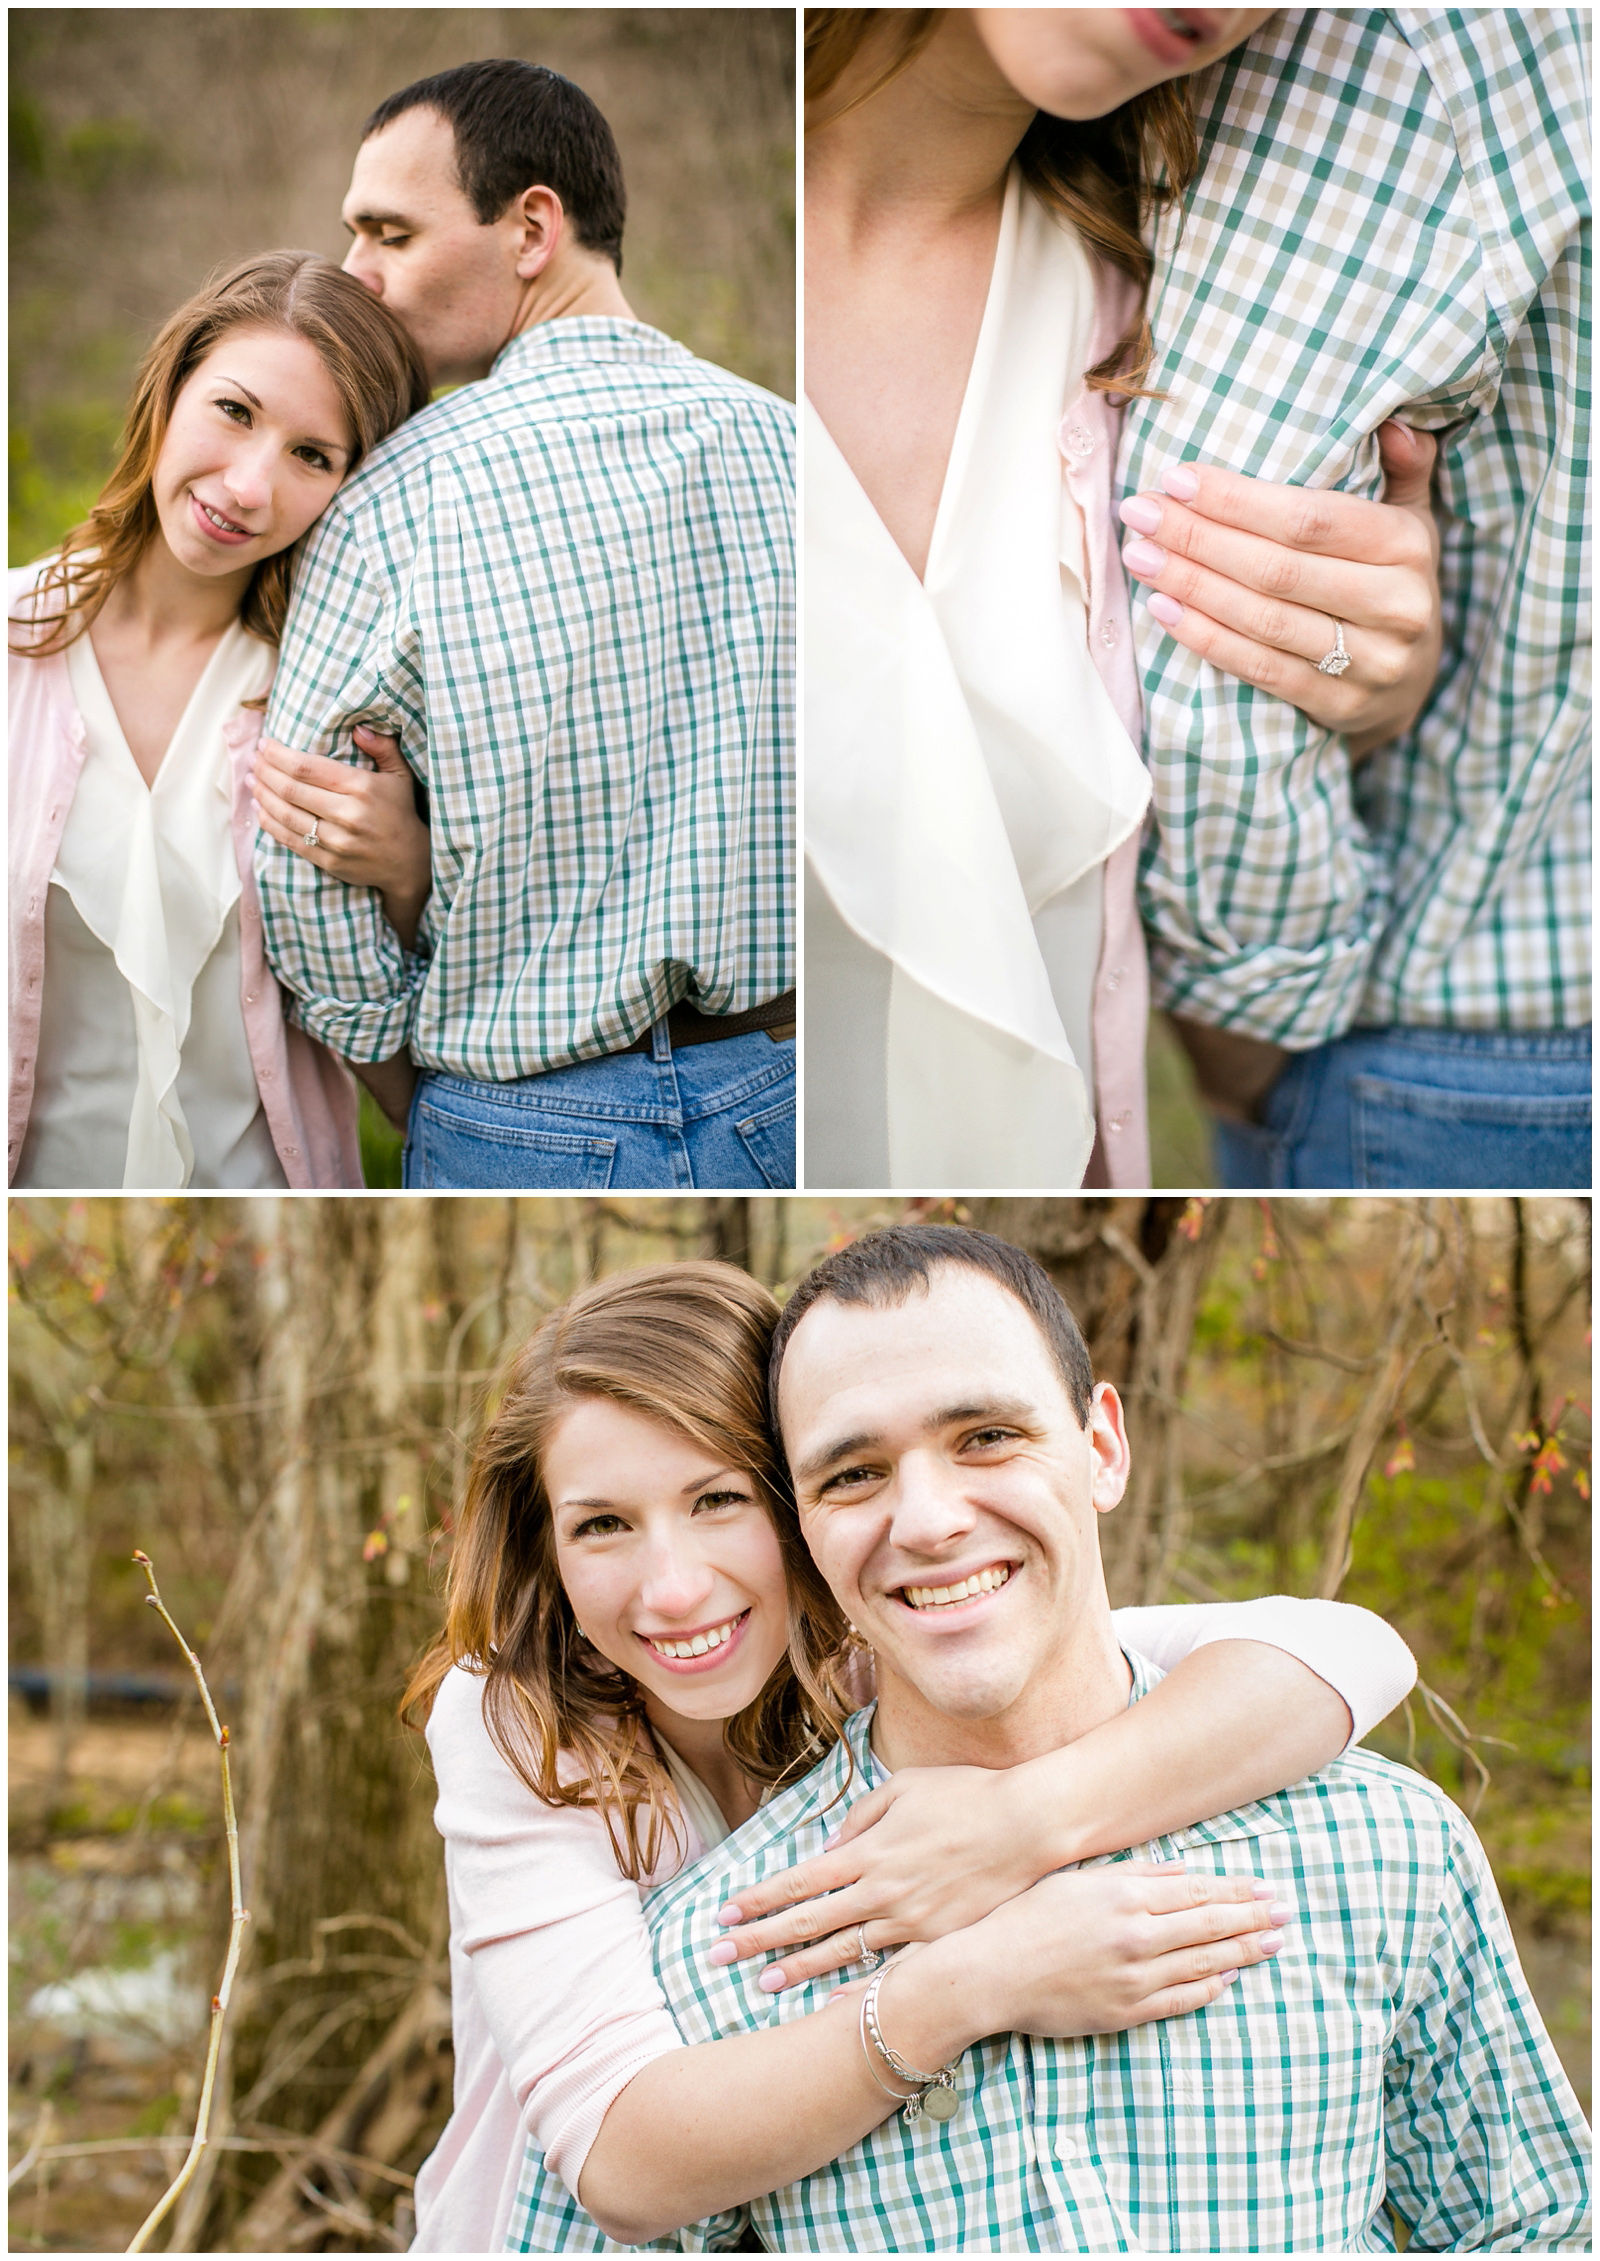 ArdentStoryHannahDavidEngaged_AtlantaEngagement_0018